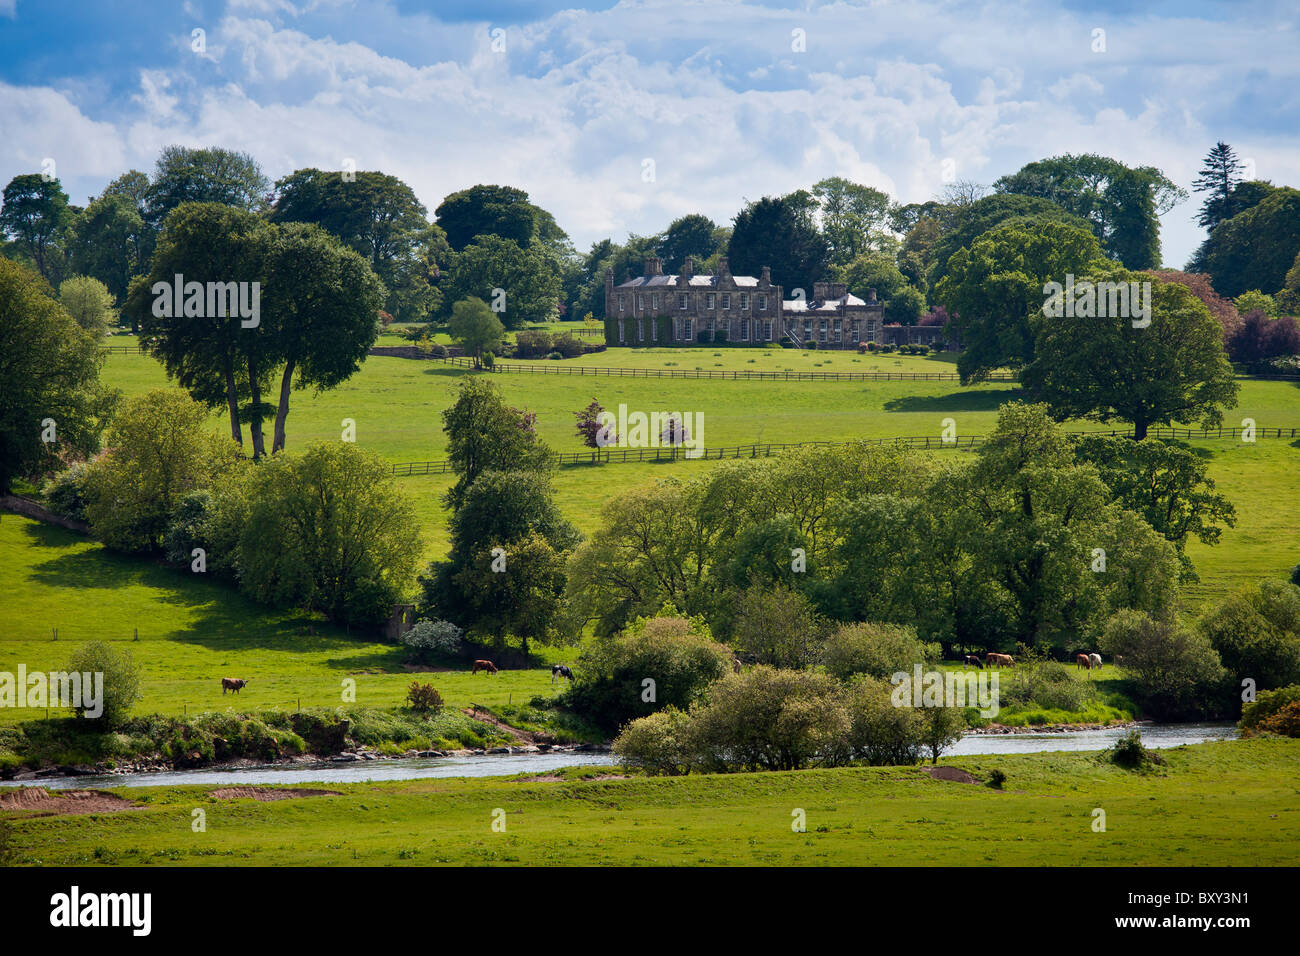 Elegant Fort William House at Glencairn near Lismore, County Waterford, Ireland Stock Photo